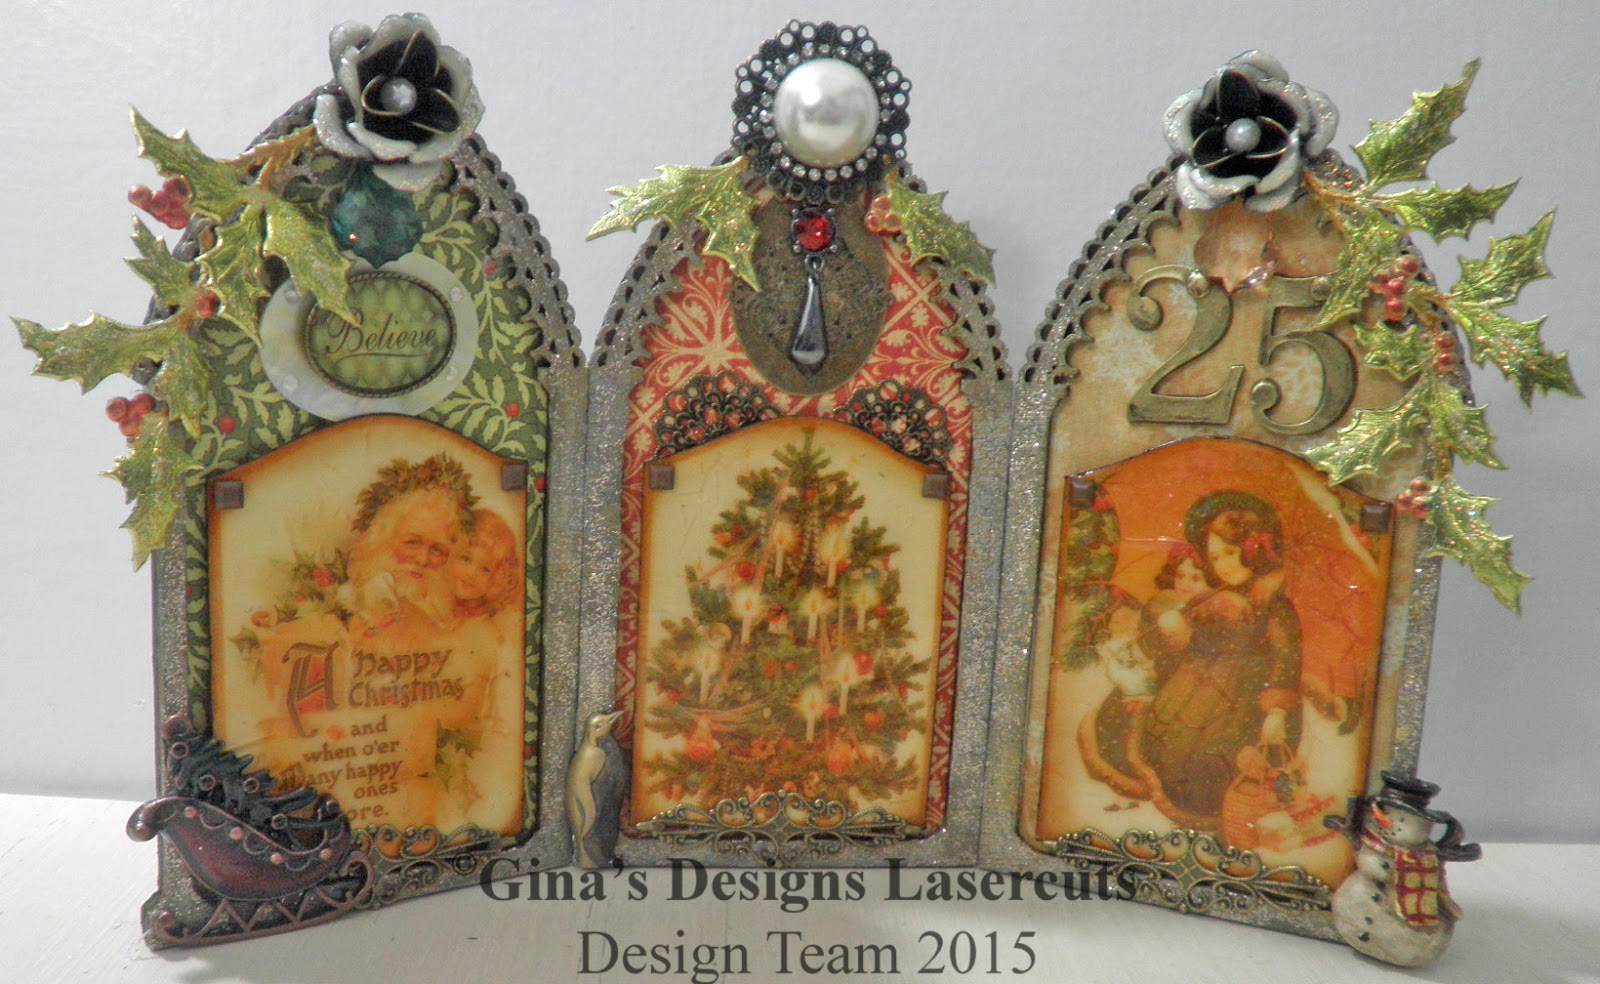 Ginas Designs: Vintage Style Christmas Triptych